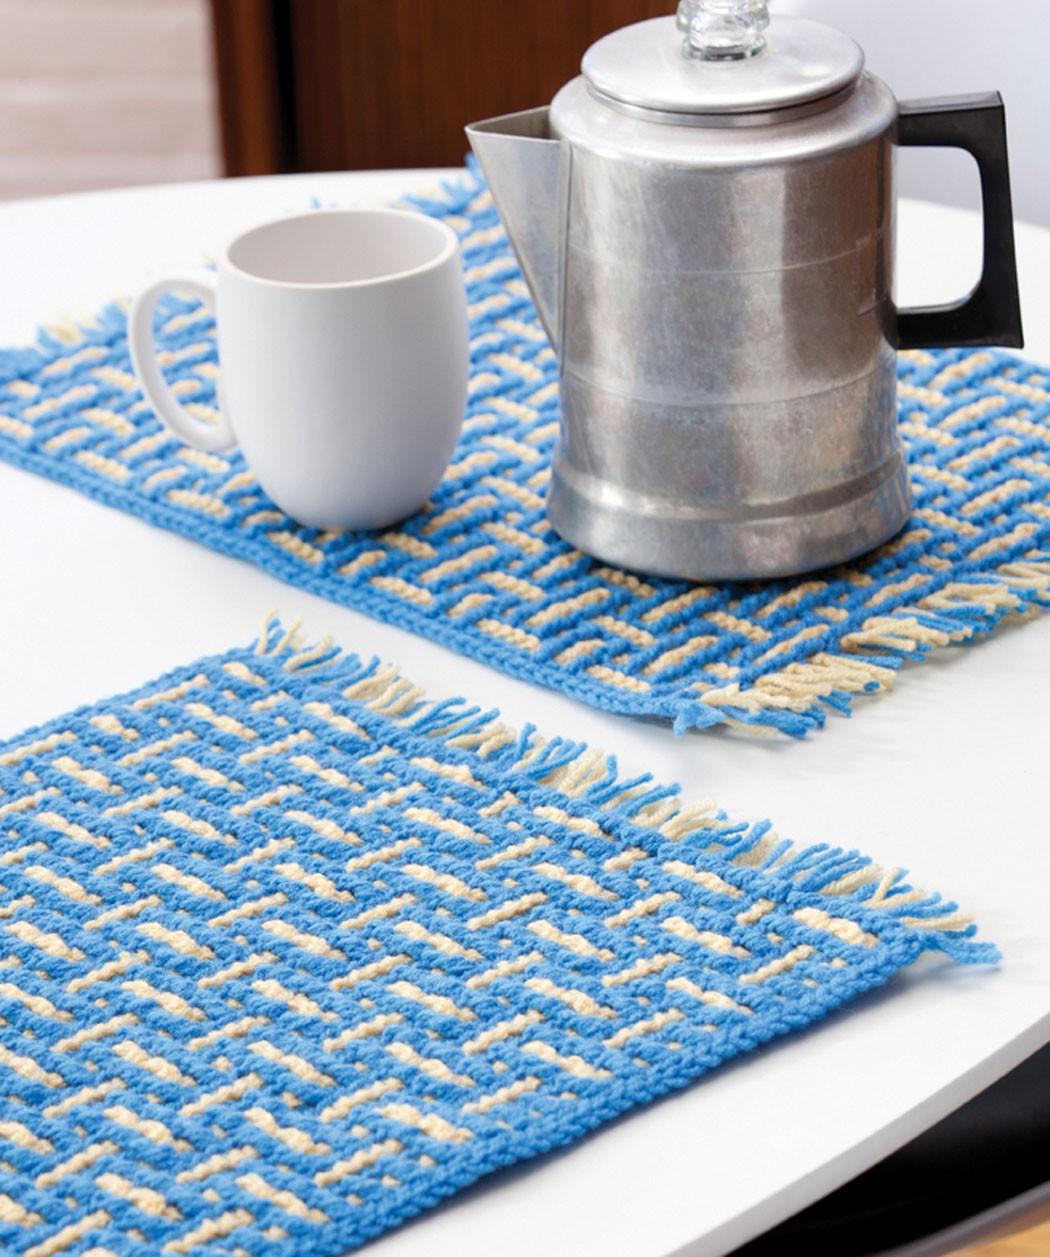 Placemat Weaving Patterns Placemat Knitting Pattern